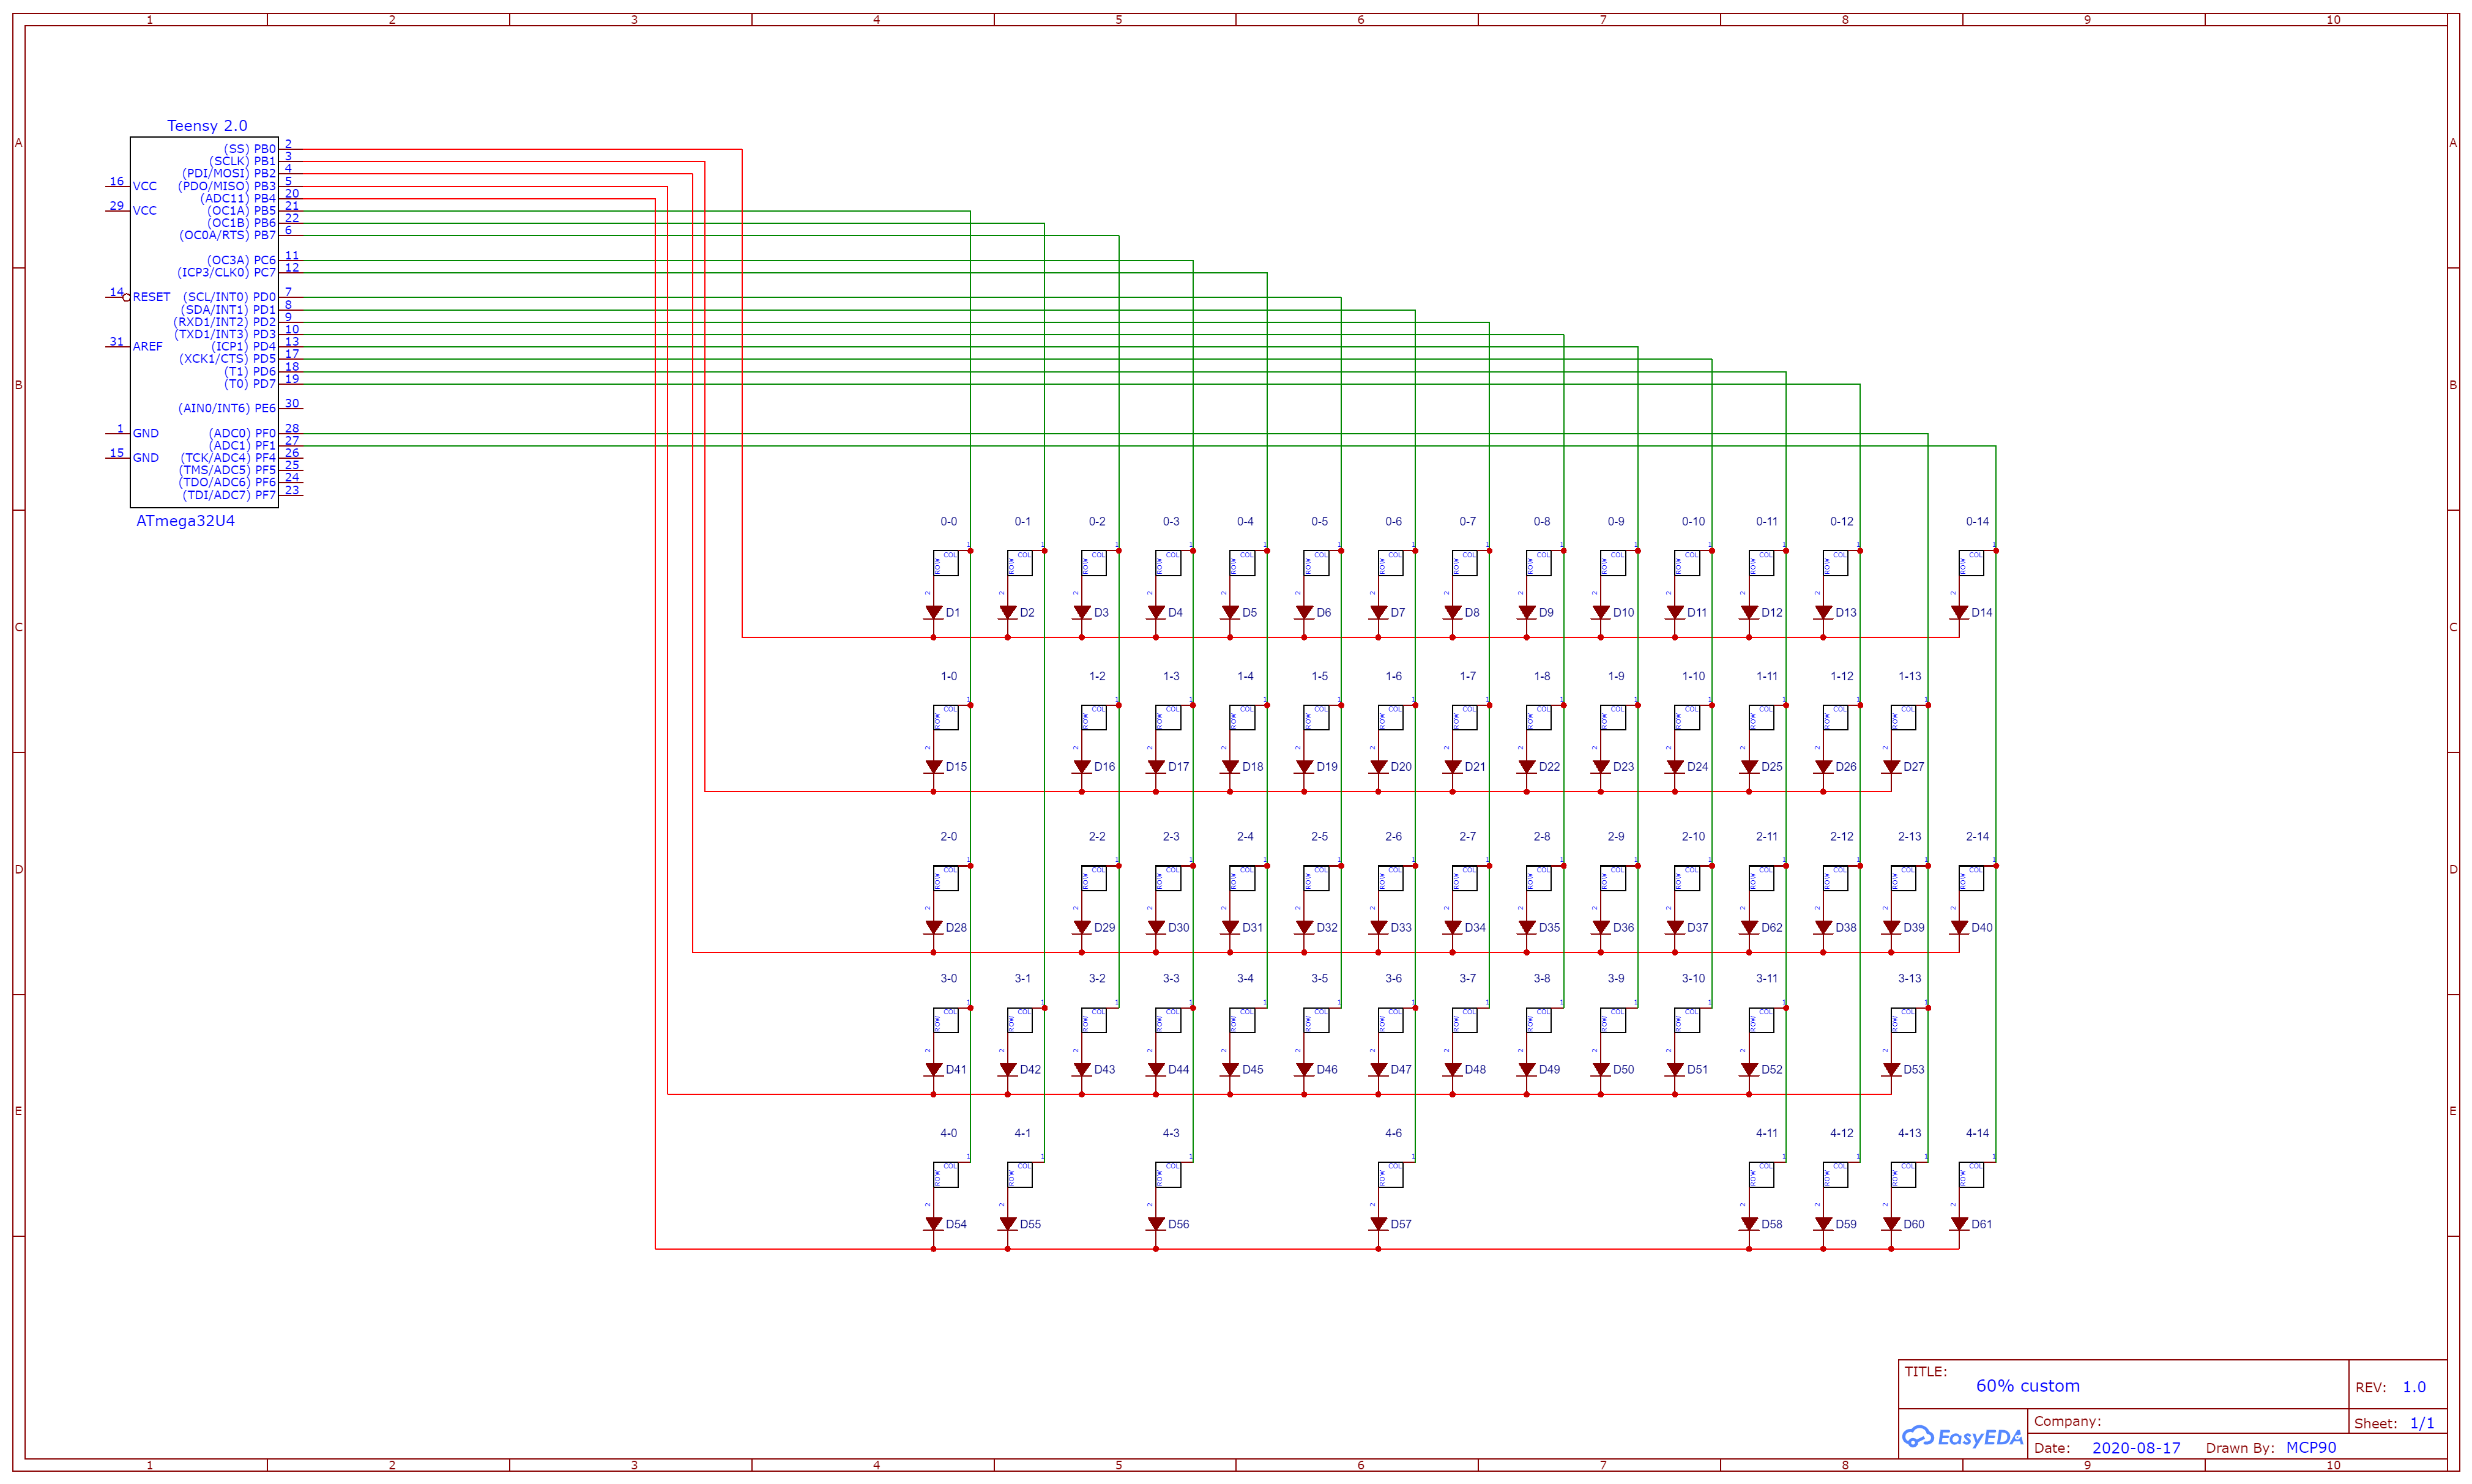 Schematic_60% custom_2020-08-18_10-01-30.png